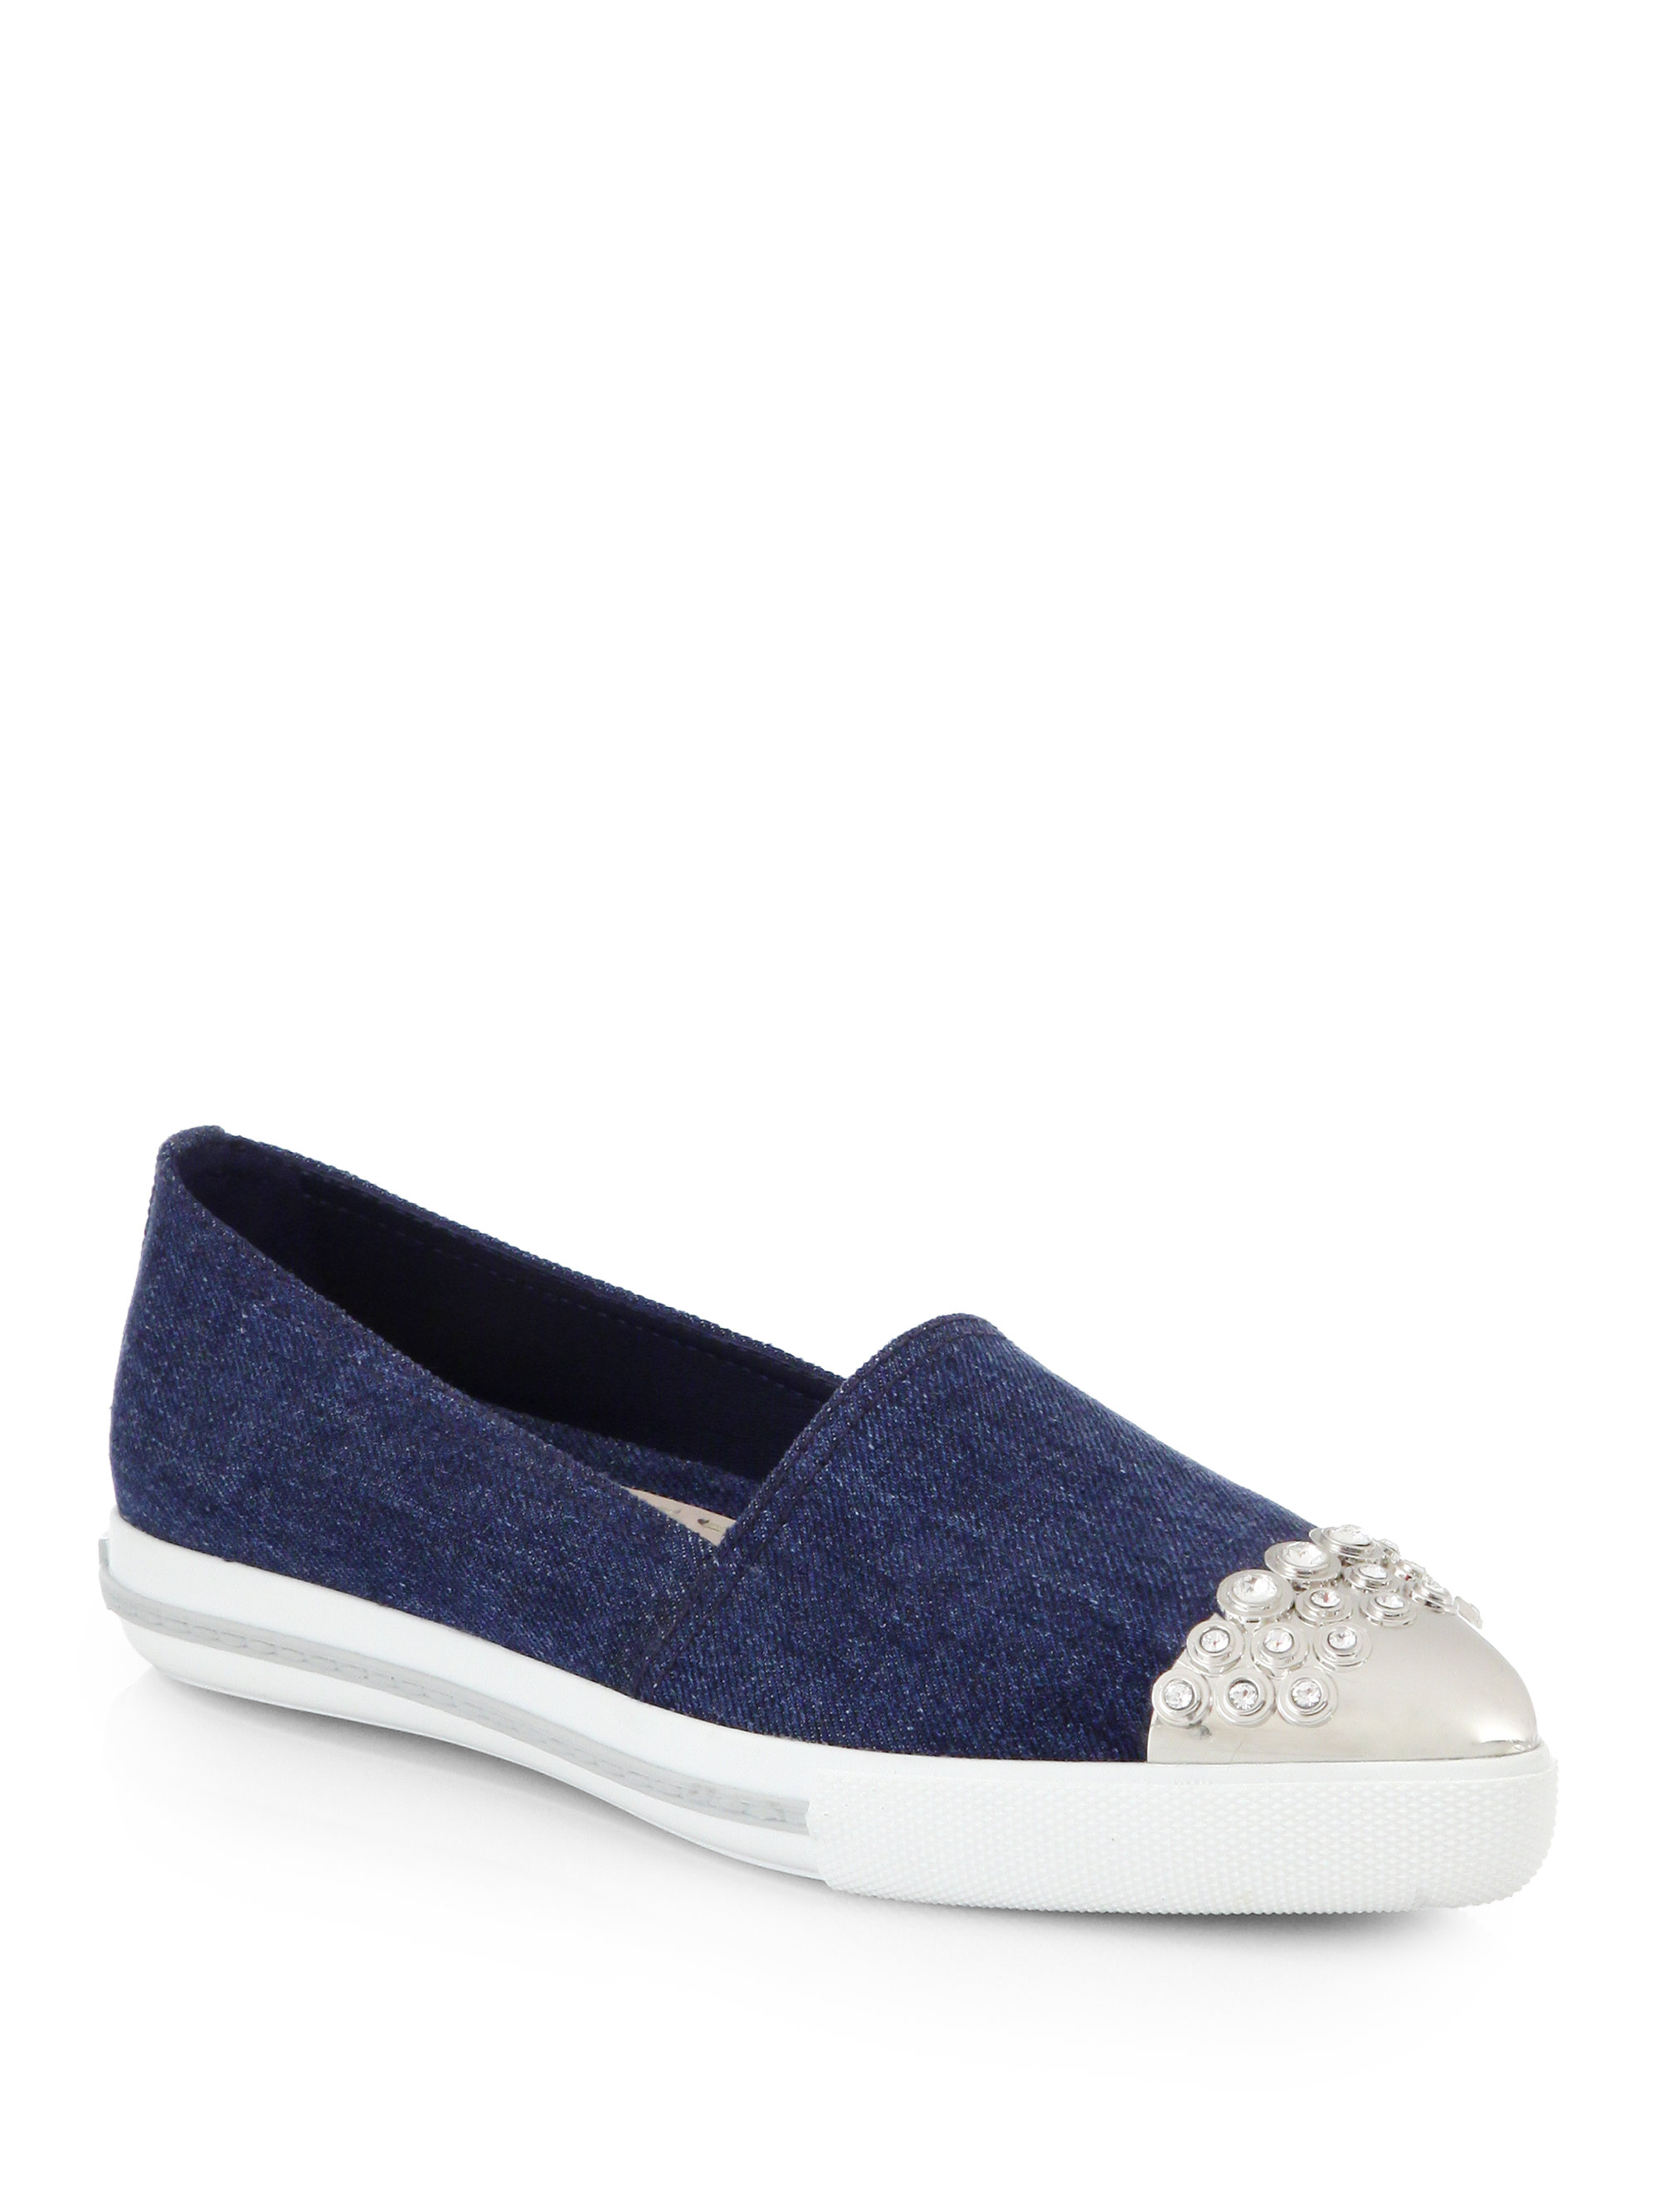 Miu Miu Cap Toe Denim Platform Sneakers